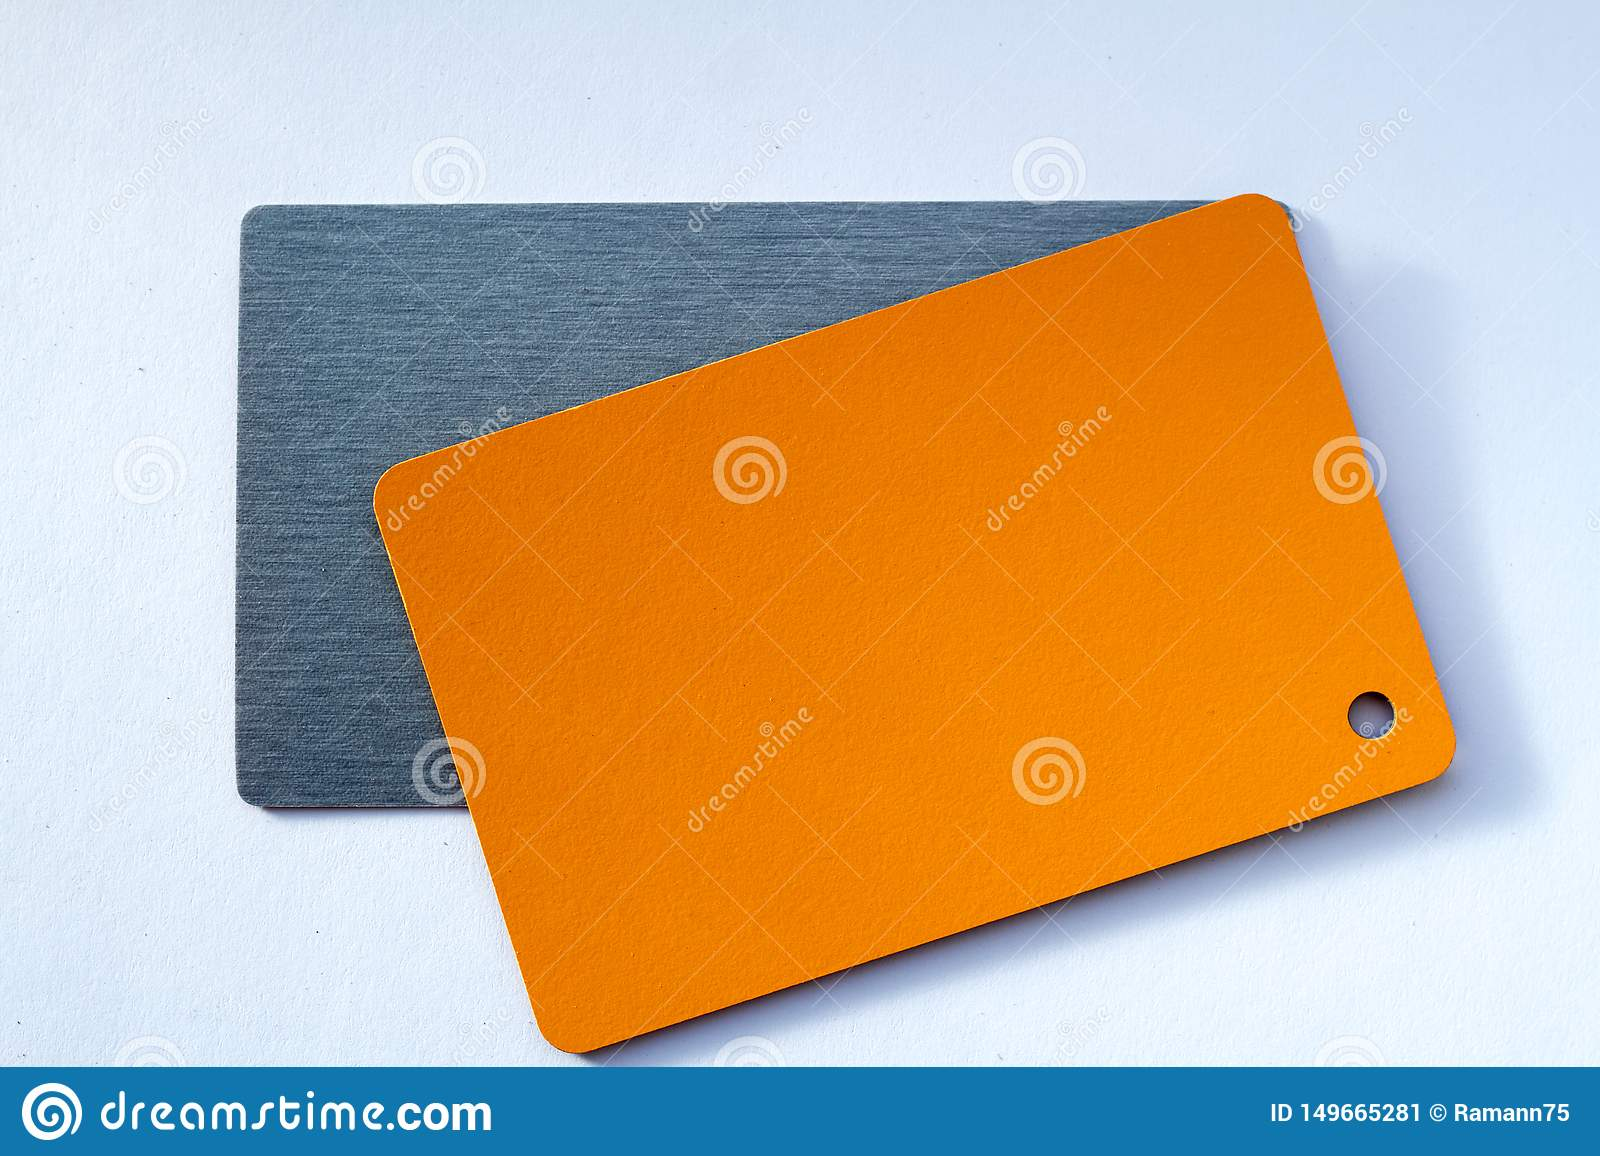 Concept of color cards on white background two colors gray and orange isolate on white background